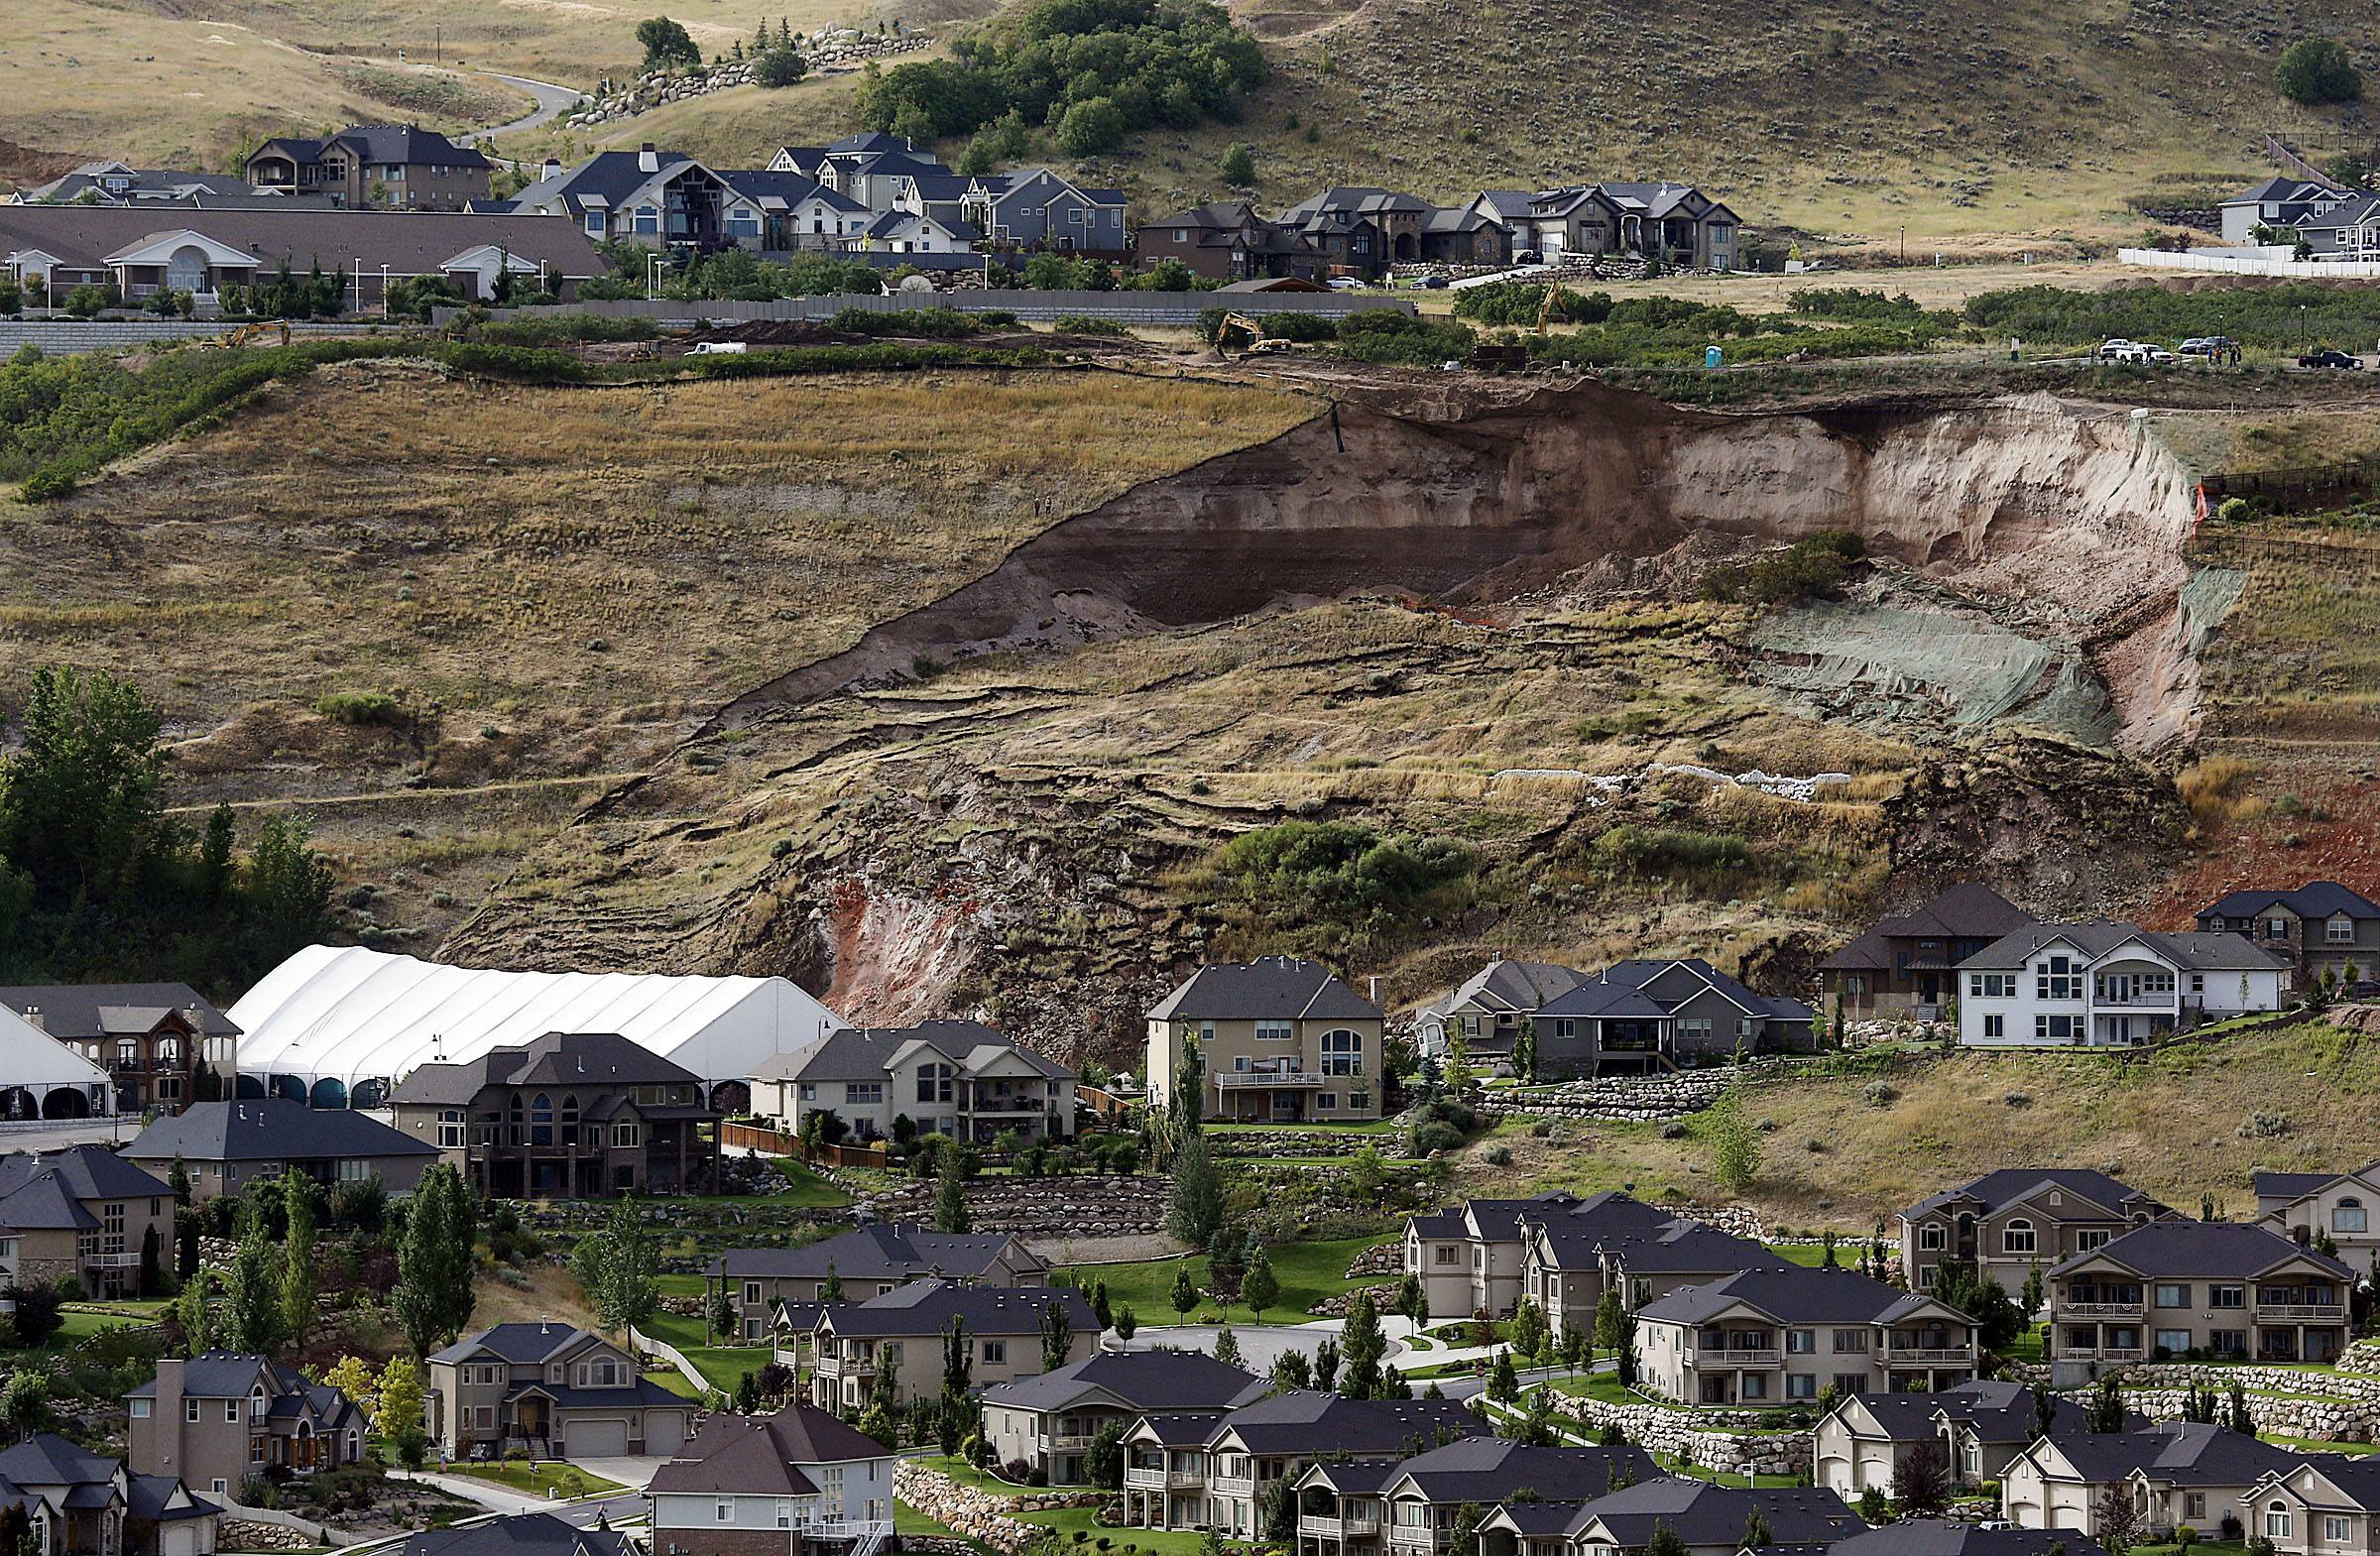 One home was destroyed and 27 others were evacuated after a landslide early Tuesday struck an upscale suburban Salt Lake City community, where officials had worried for nearly a year about cracked soil on the hillside above the houses.